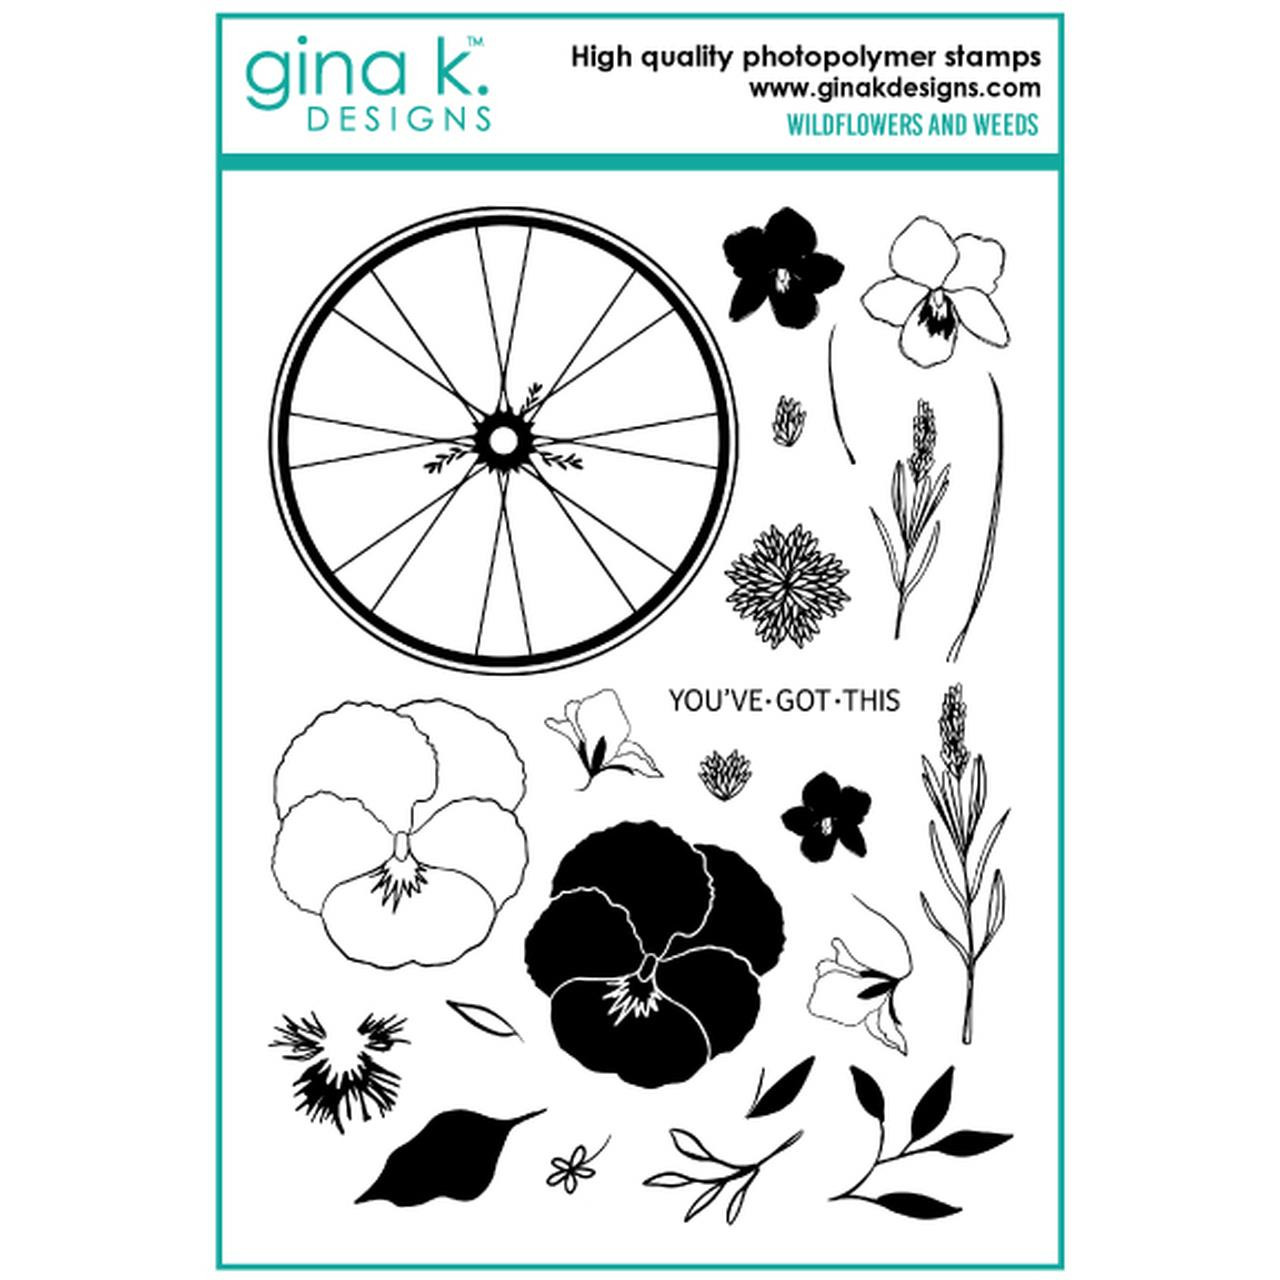 Wildflowers and Weeds, Gina K Designs Clear Stamps - 609015526736